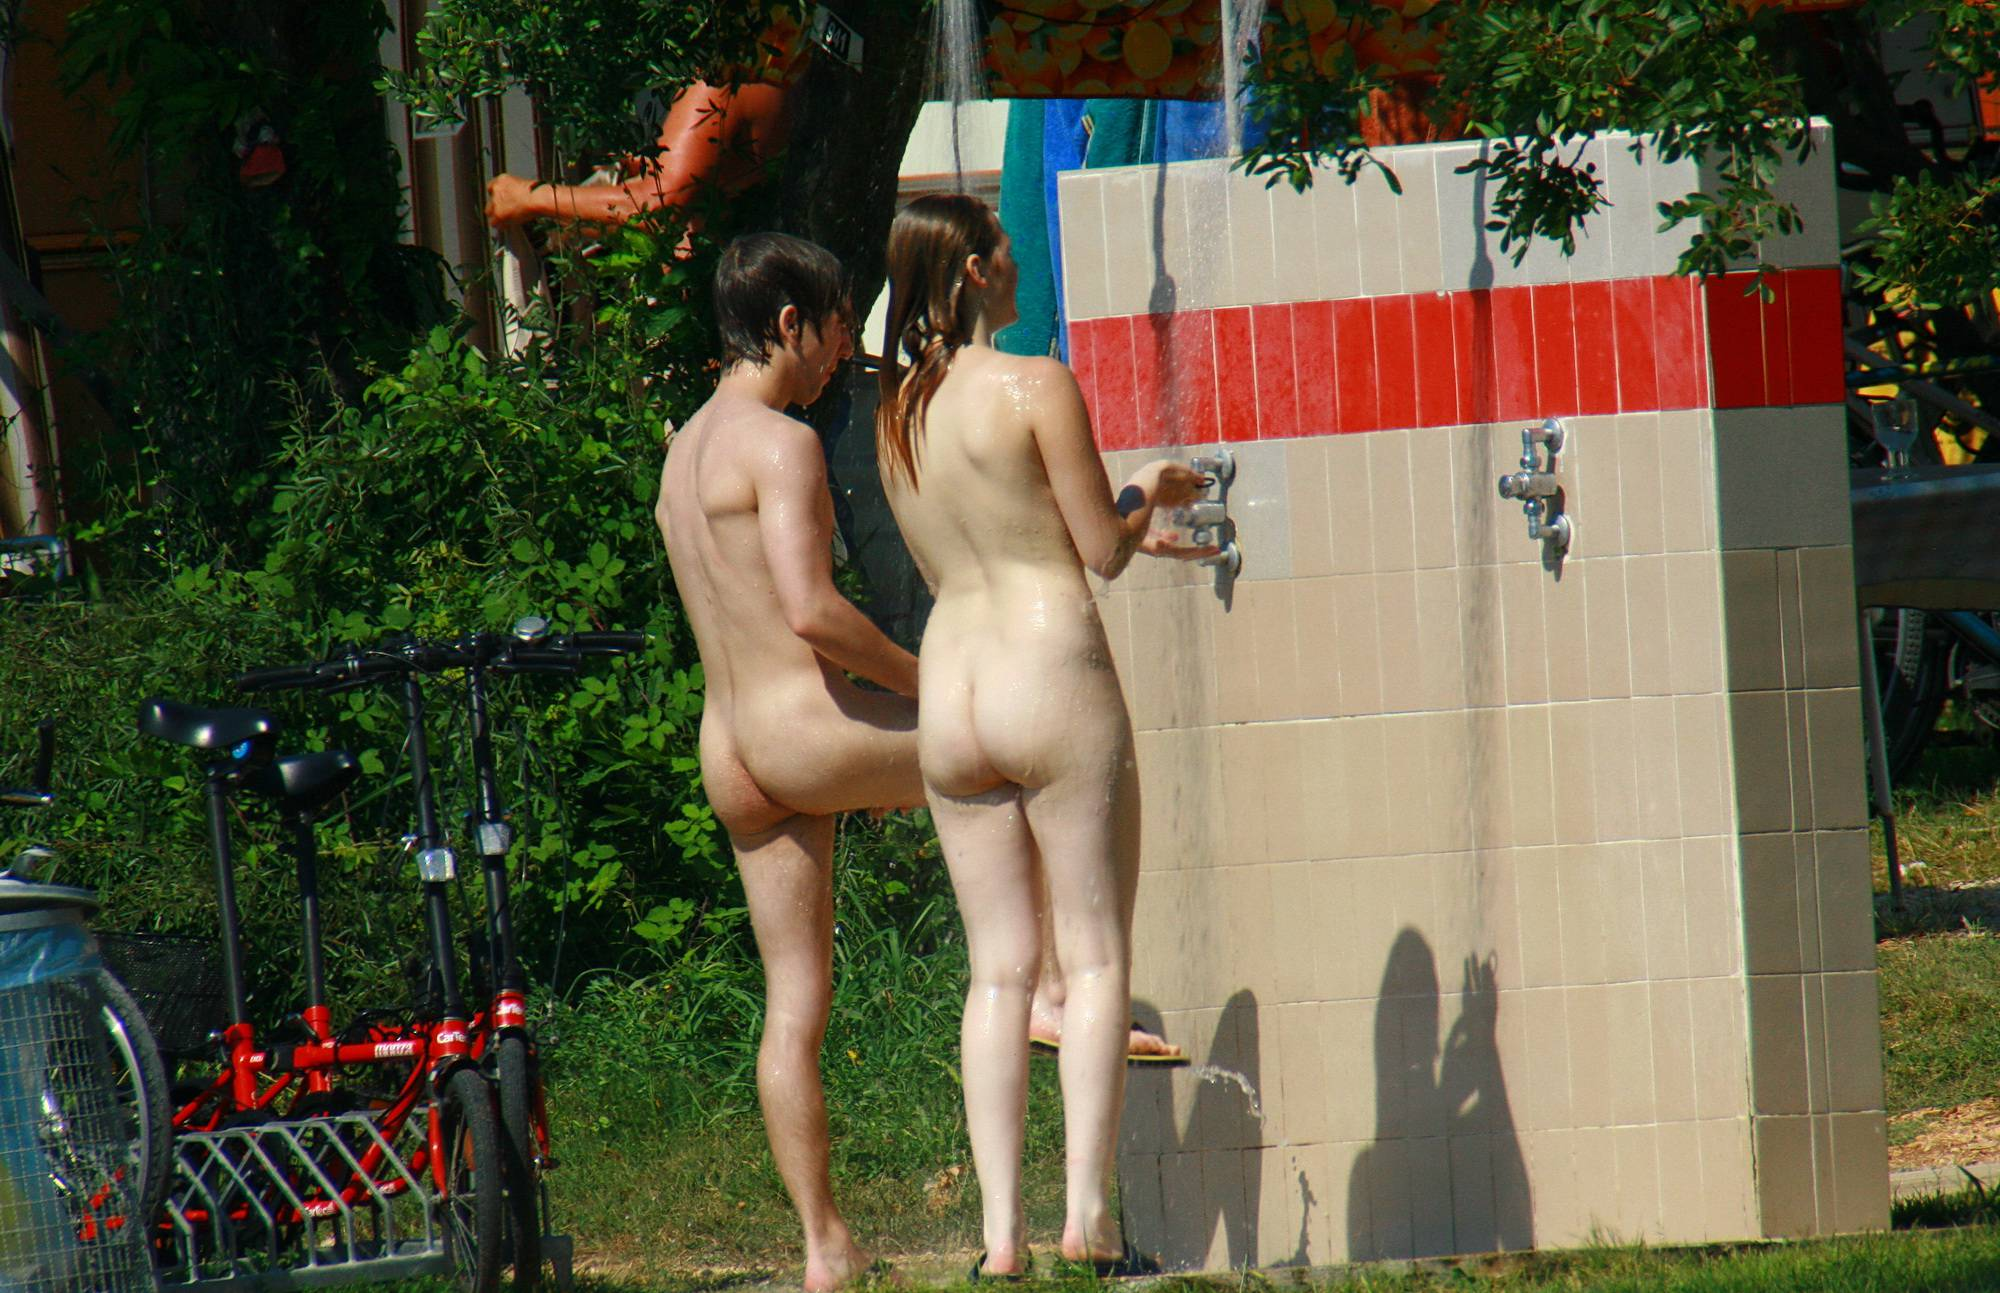 Pure Nudism Images-Roasting In The Hot Sun - 4